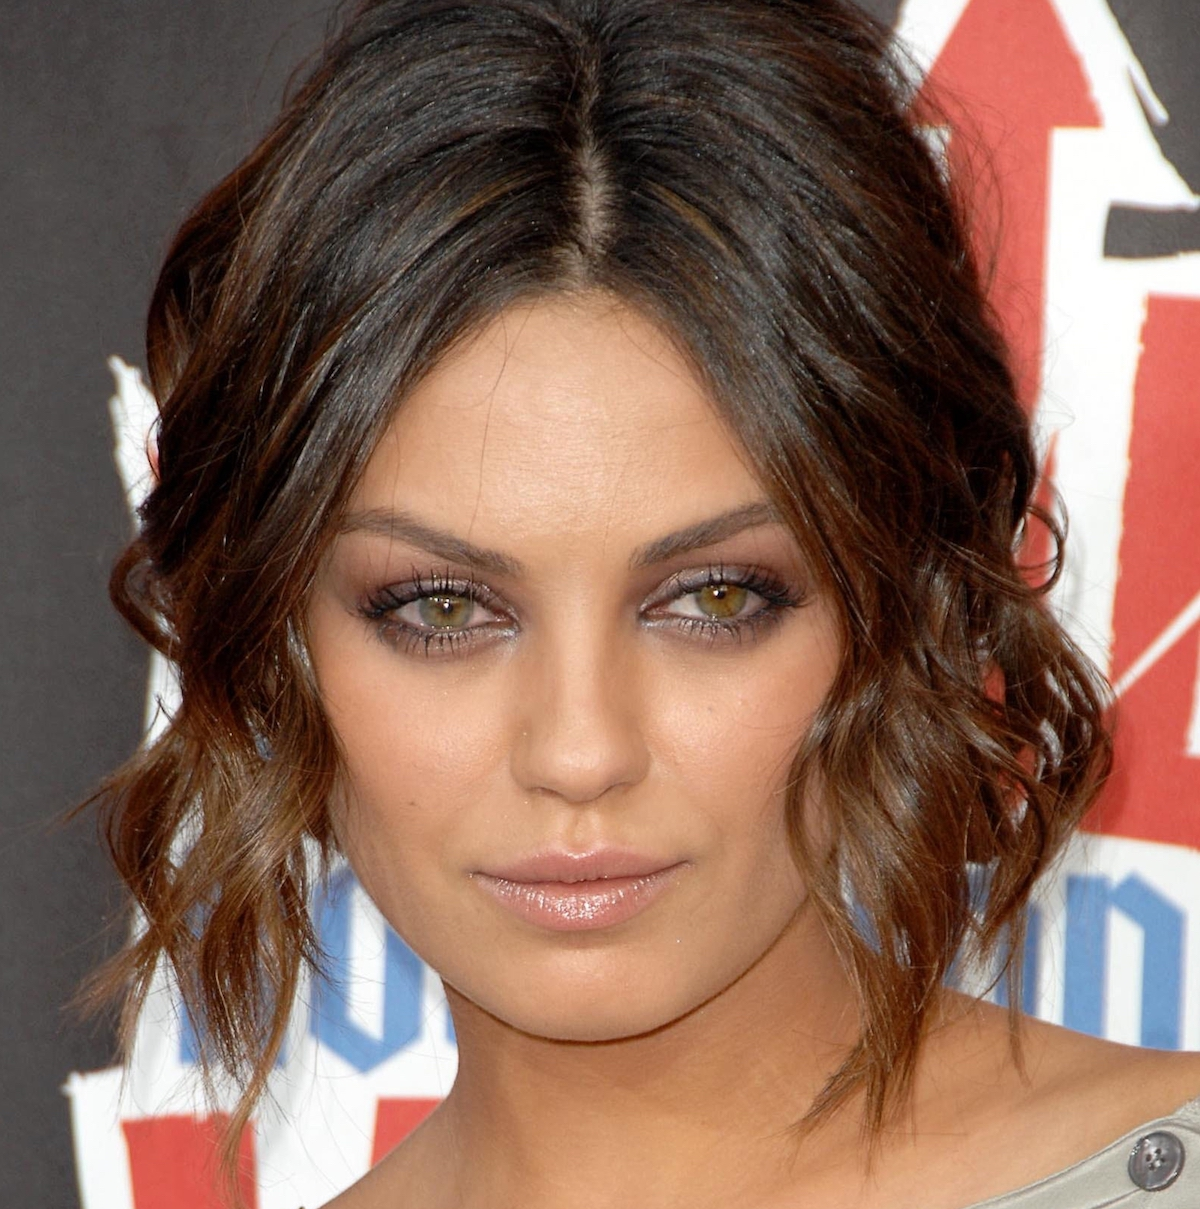 Hairstyles For Round Faces: Haircuts For Round Faces: Slimming Hairstyles